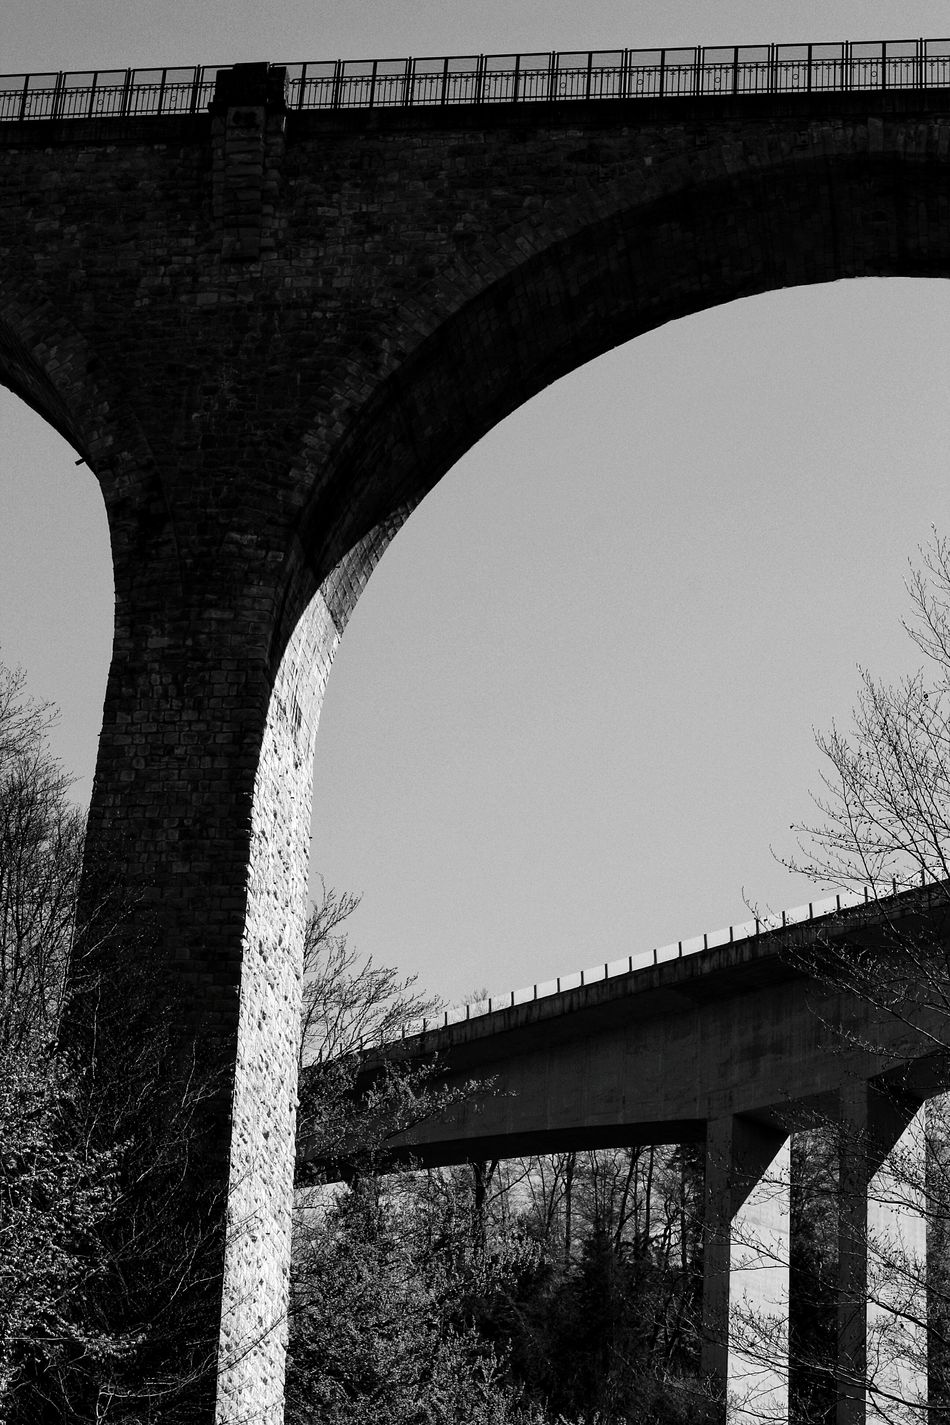 Architecture Arch Outdoors Photoshooting Photoshoot Blackandwhite Photography Shadow Blackandwhite Black And White Photography Bridge Contrast Black White Bridge - Man Made Structure Built Structure Day No People Sky